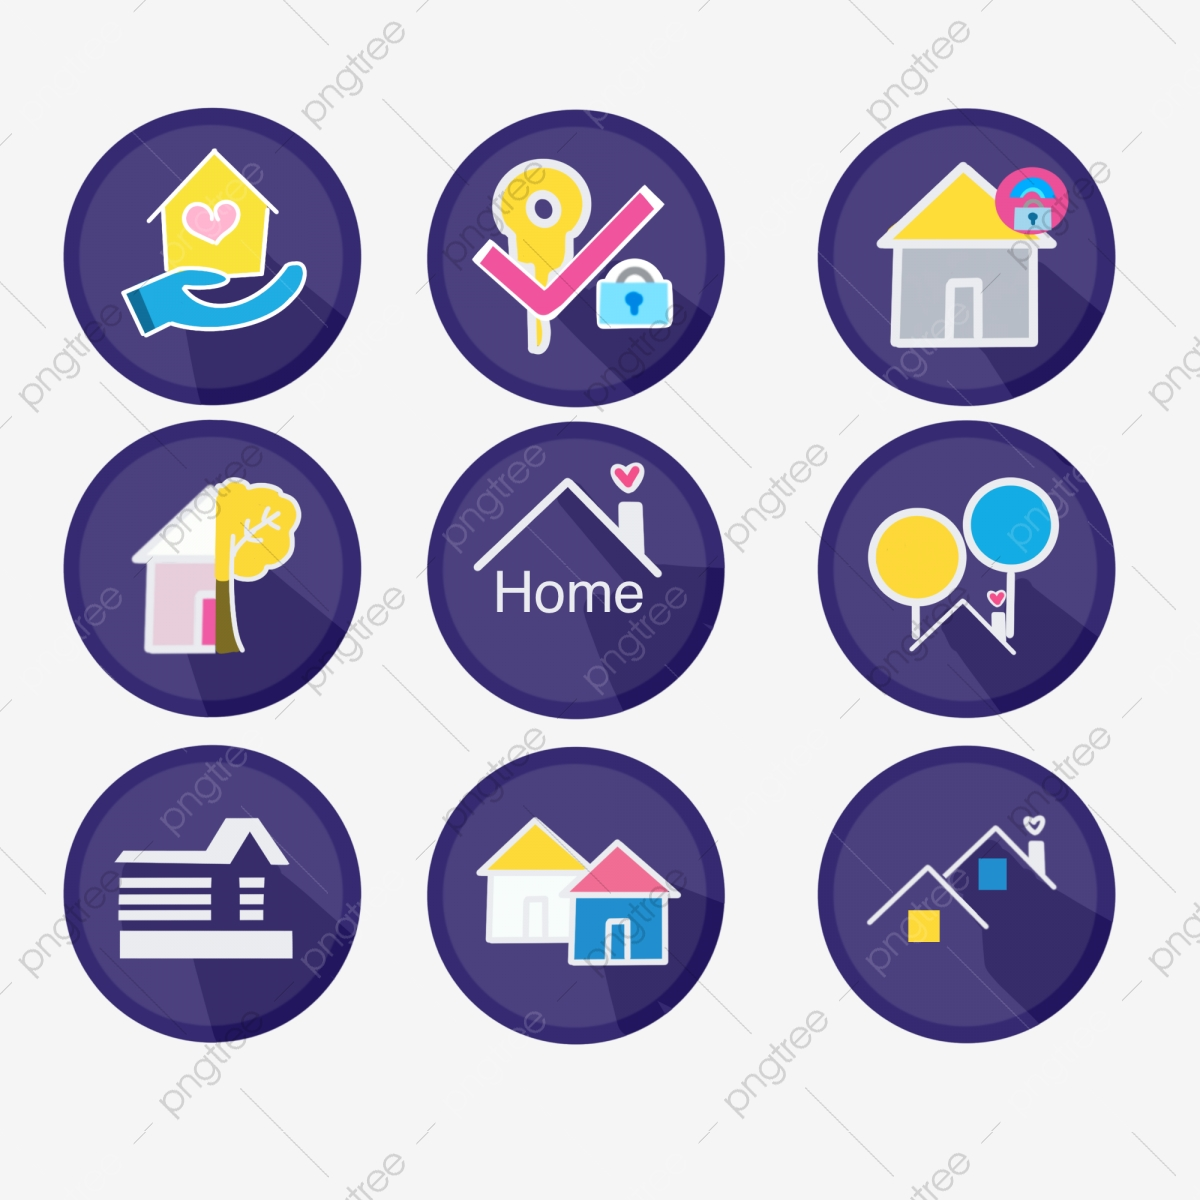 Color House Icons House Icon Logo Png Transparent Clipart Image And Psd File For Free Download